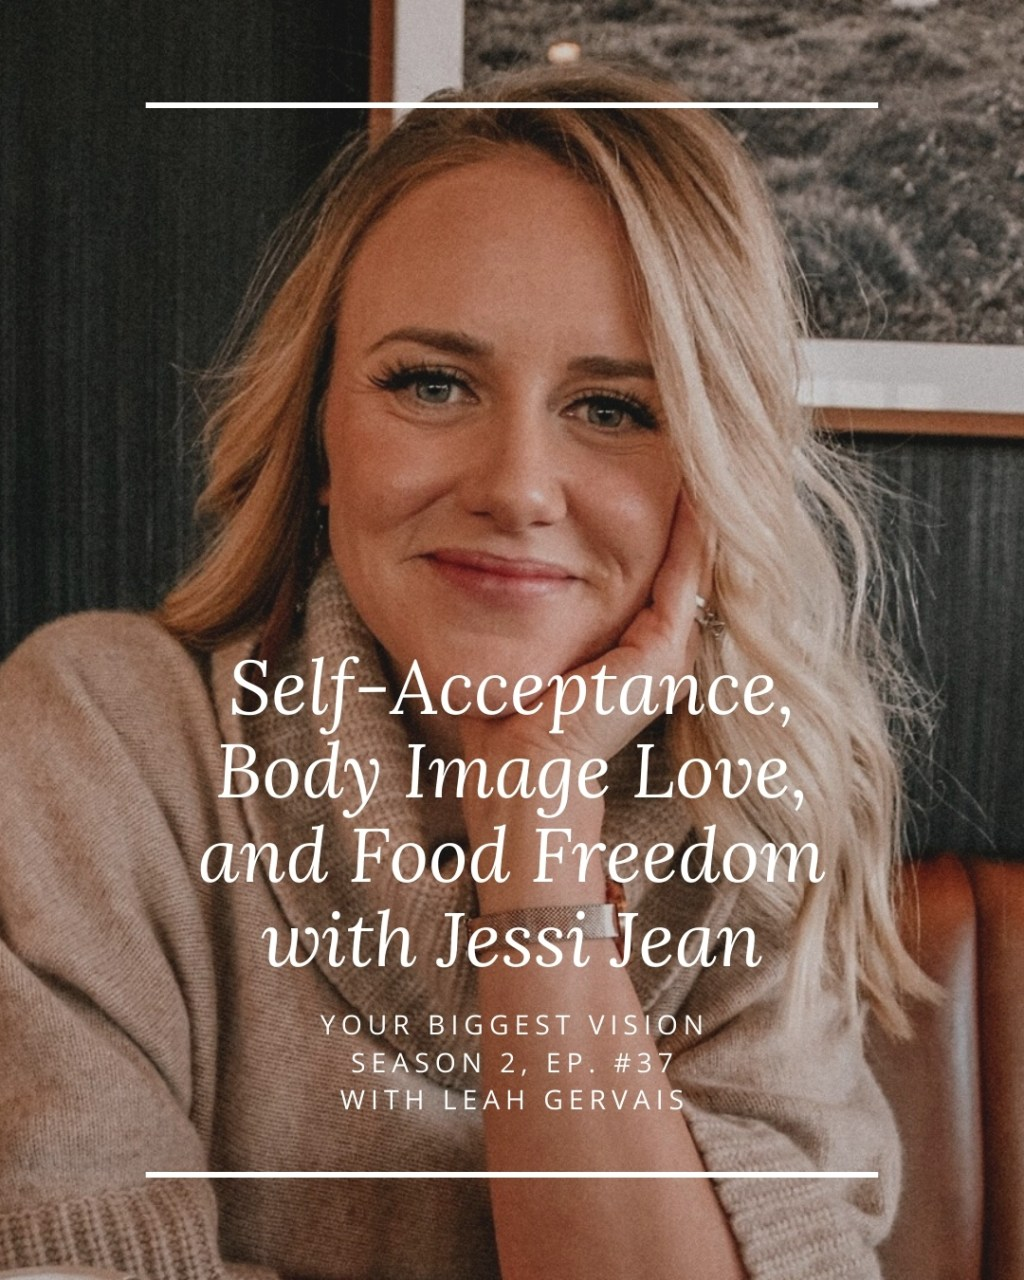 Hear Jessi Jean, entreprenuer and food freedom coach, who helps women stop binge eating and heal their relationship with food and their body!